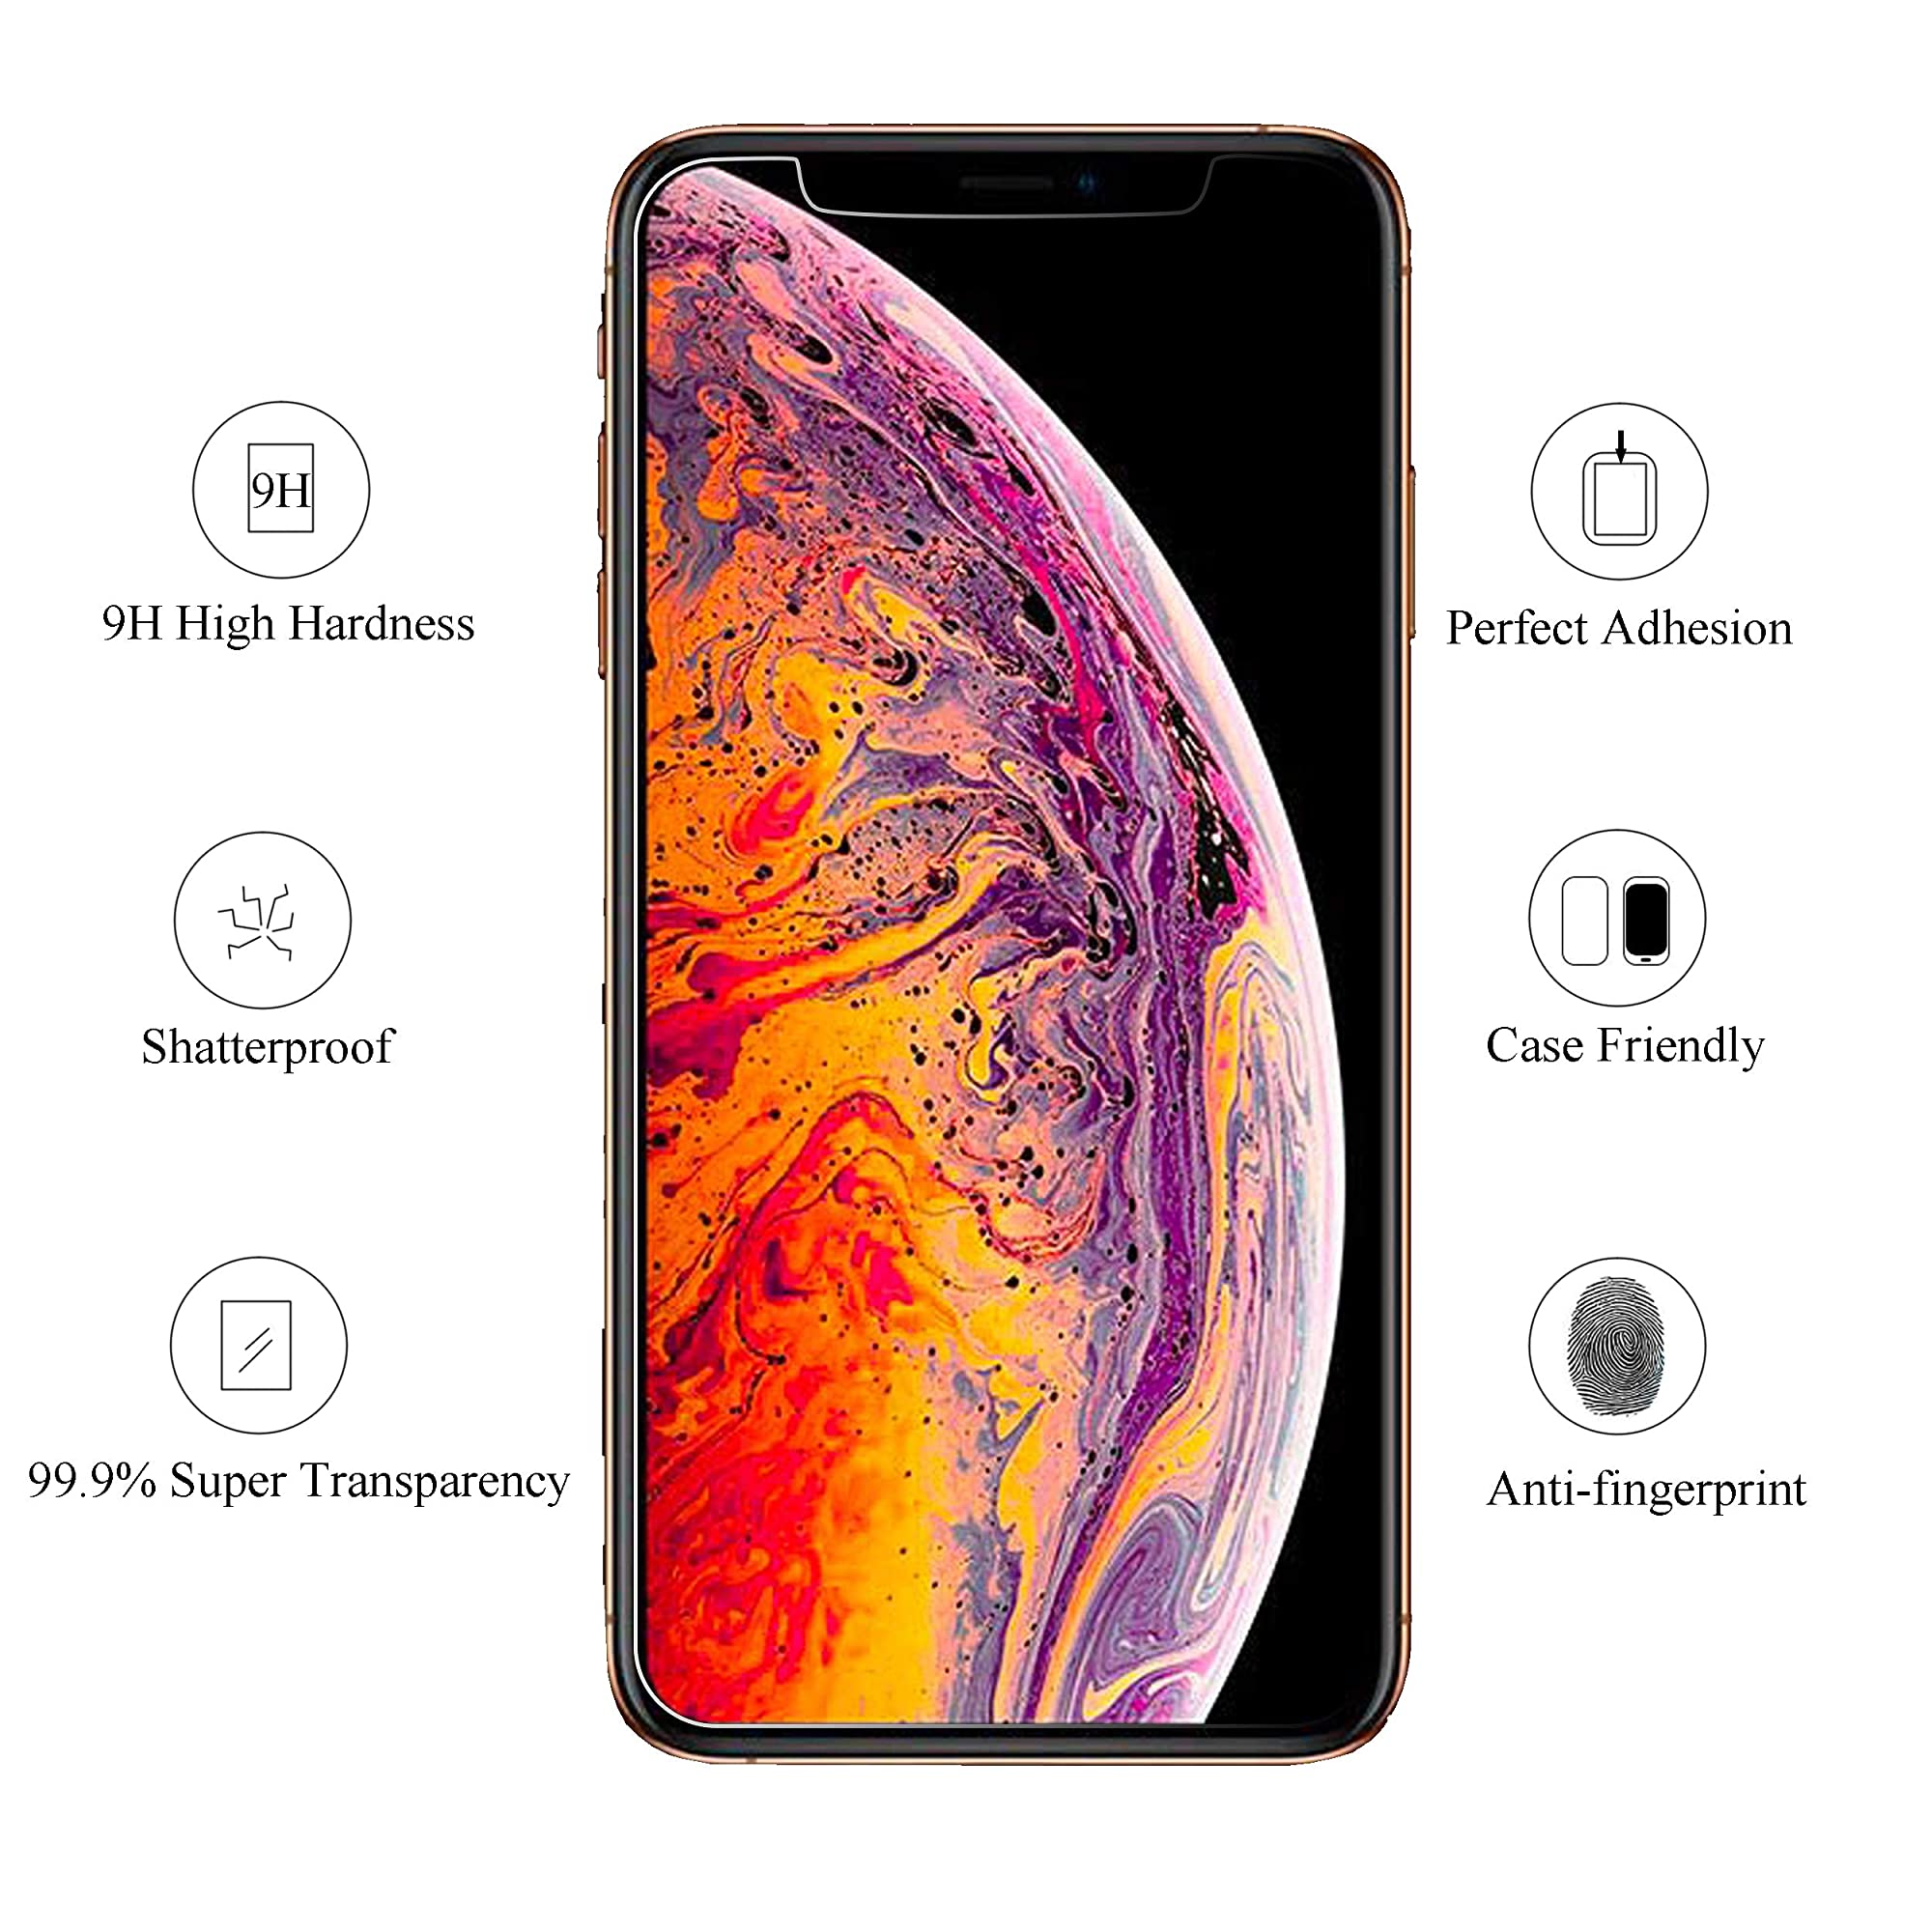 3 Pack Screen Protector For Iphone 11 Pro Max/Iphone Xs Max.